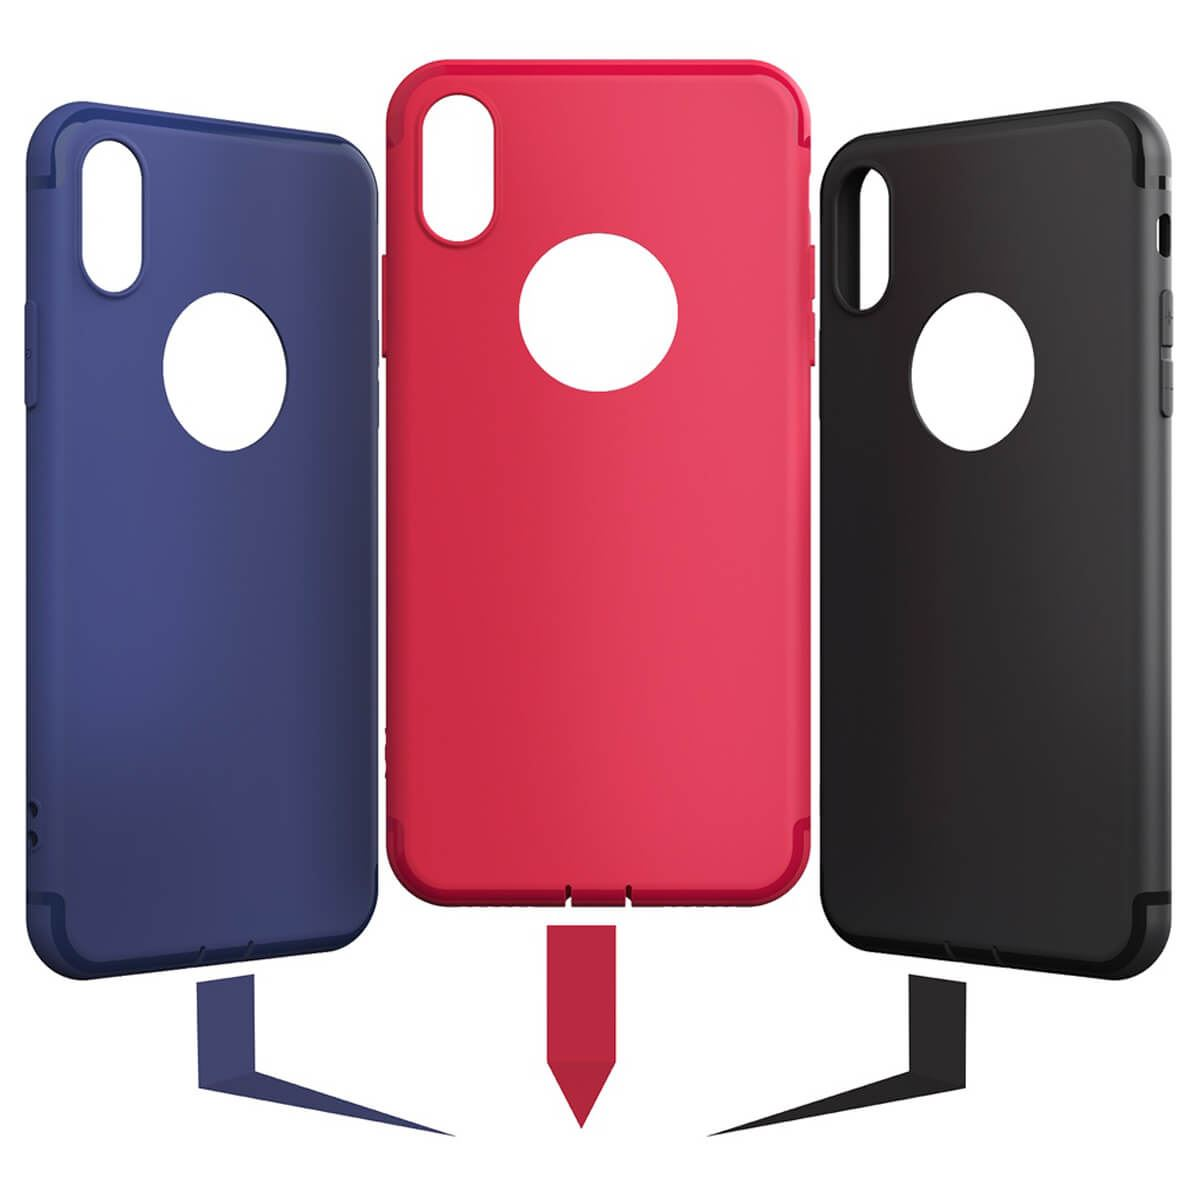 Ultra-Thin-Case-Apple-iPhone-10-8-7-Plus-6-5-Luxury-Slim-Silicone-TPU-Soft-Cover thumbnail 12